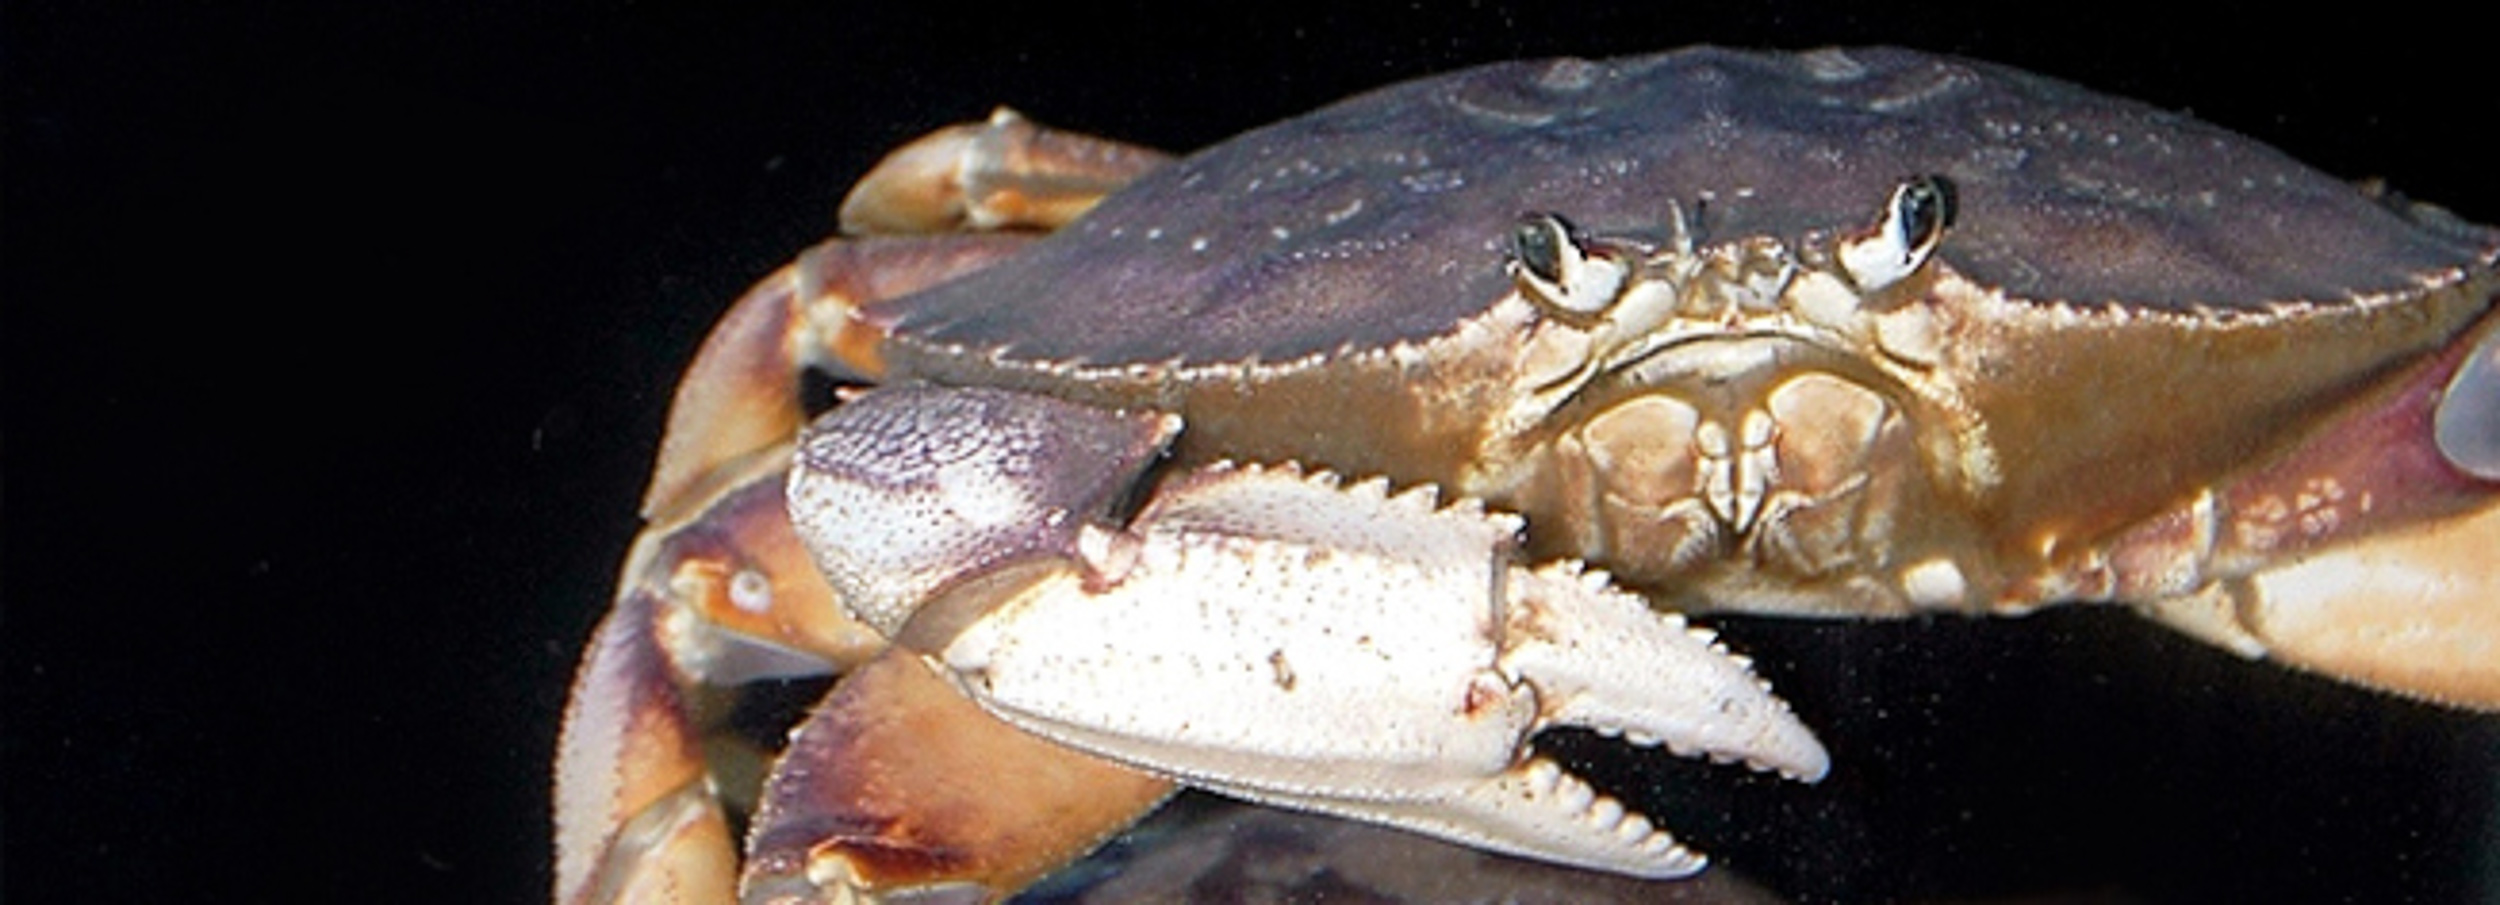 Dungeness crab Archives - Oregon Coast Aquarium